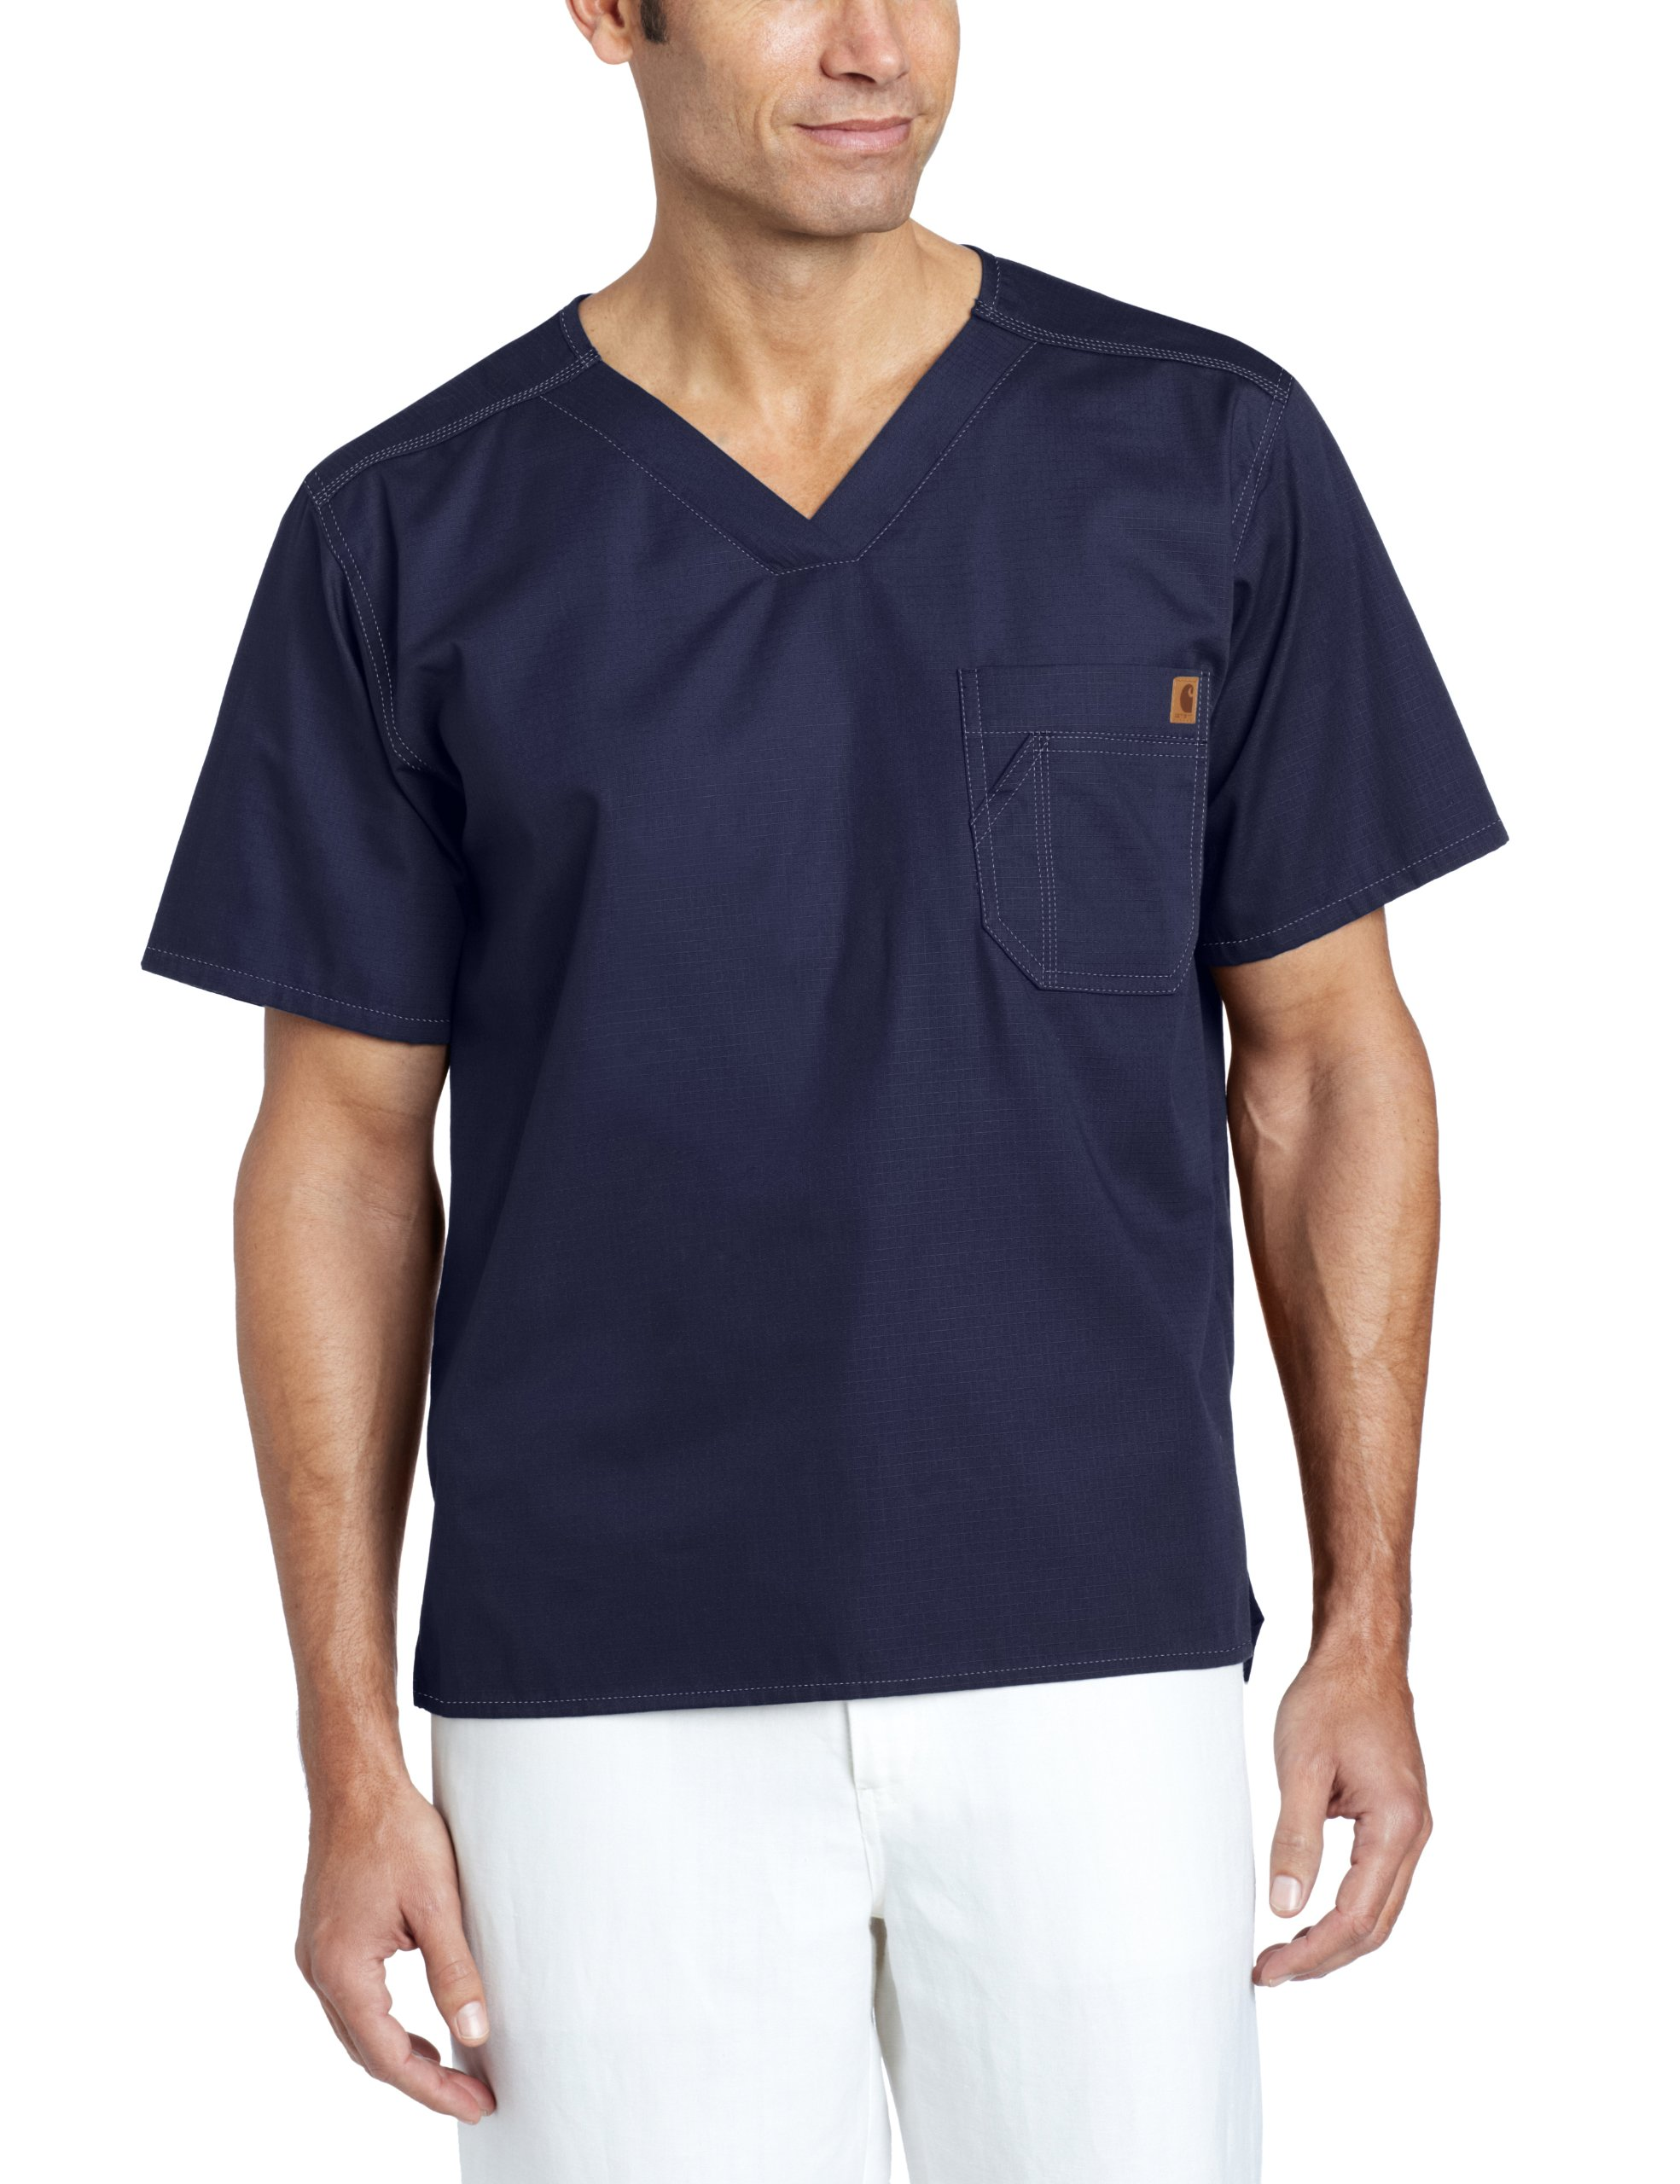 Carhartt Men's Solid Ripstop Utility Scrub Top, Navy, X-Large by Carhartt (Image #1)